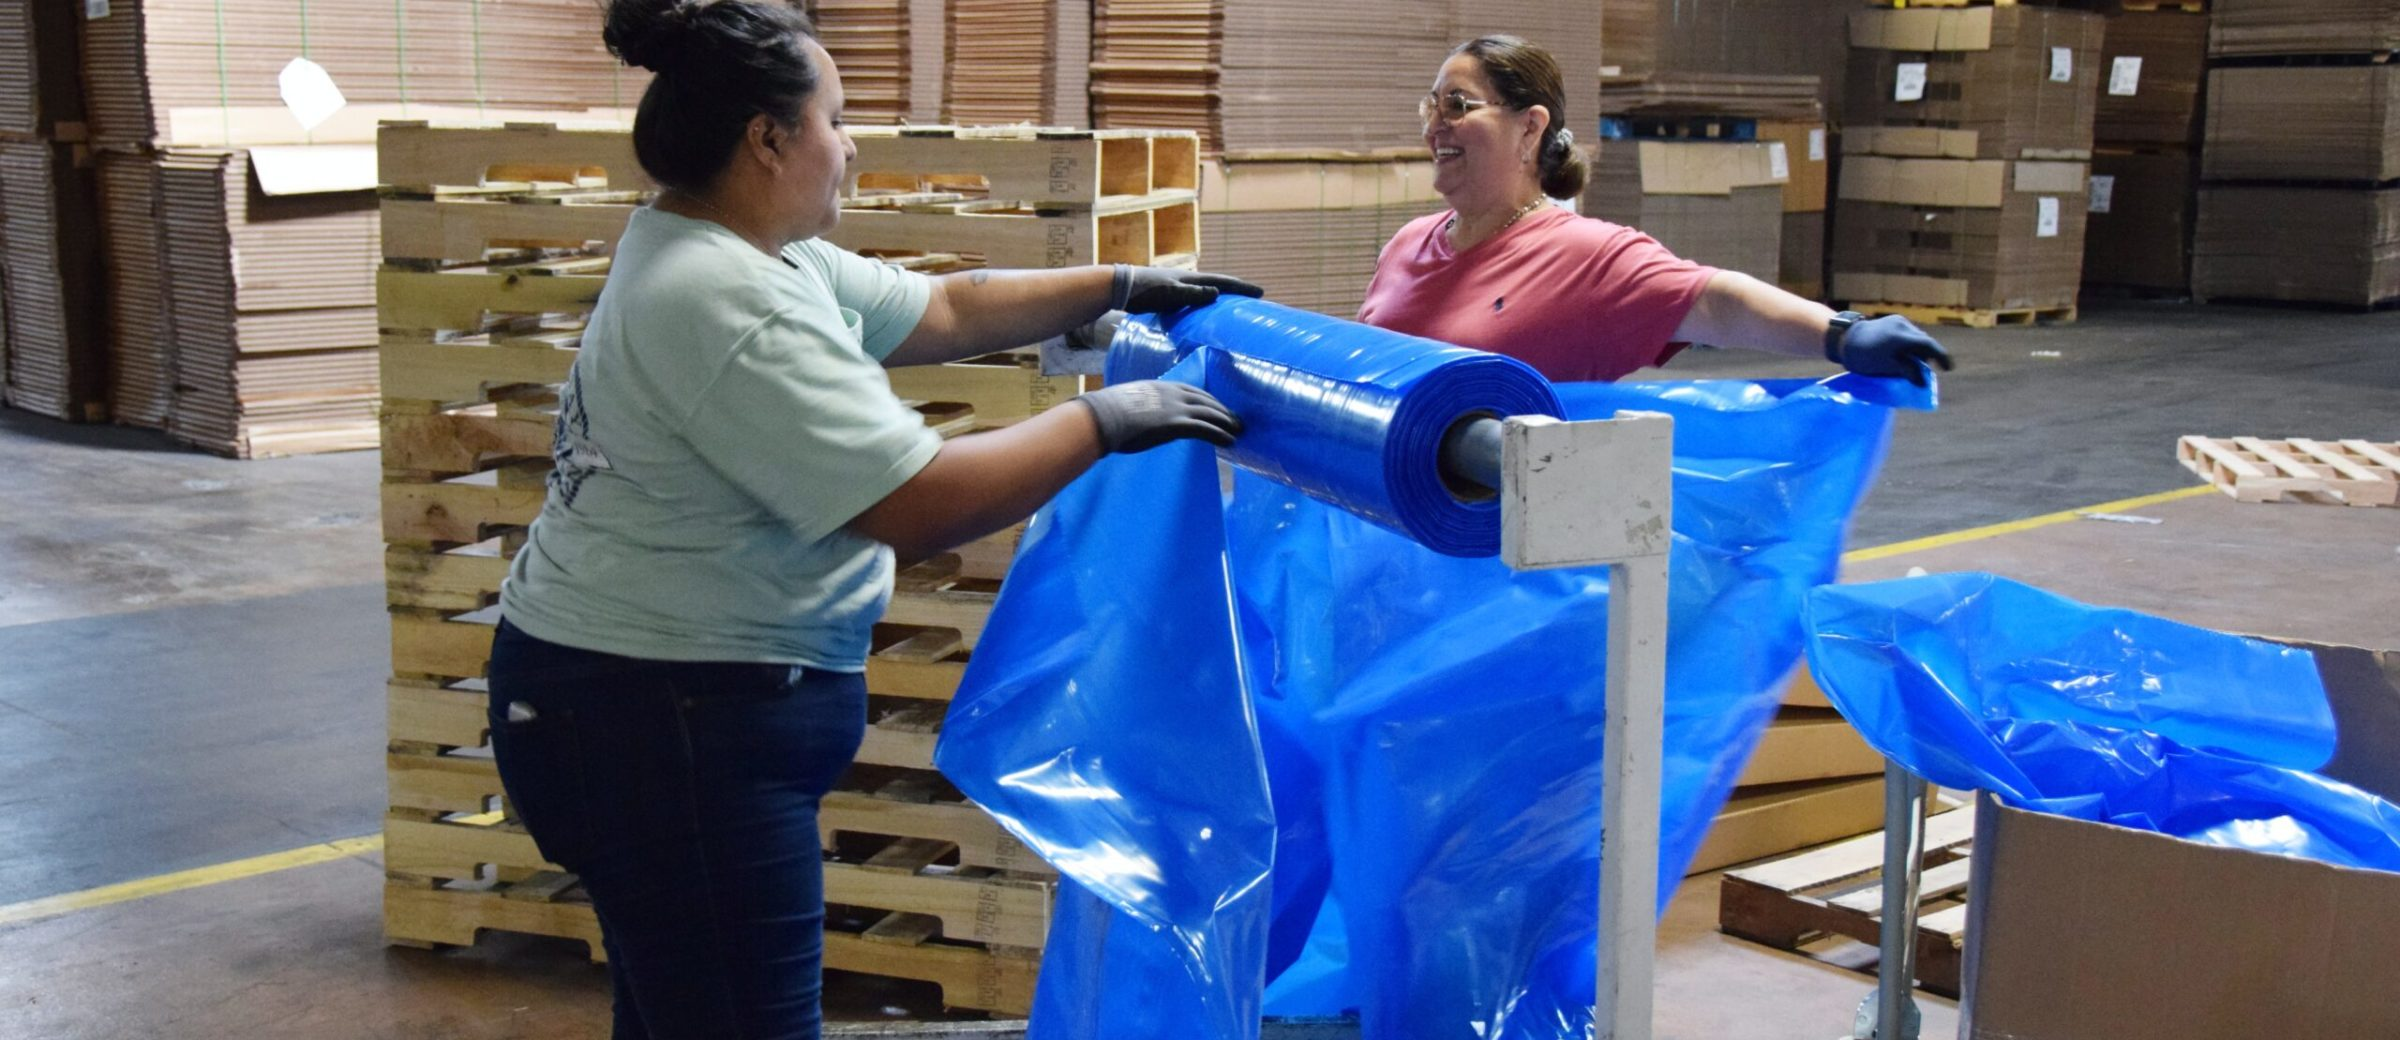 Employees assembling boxes